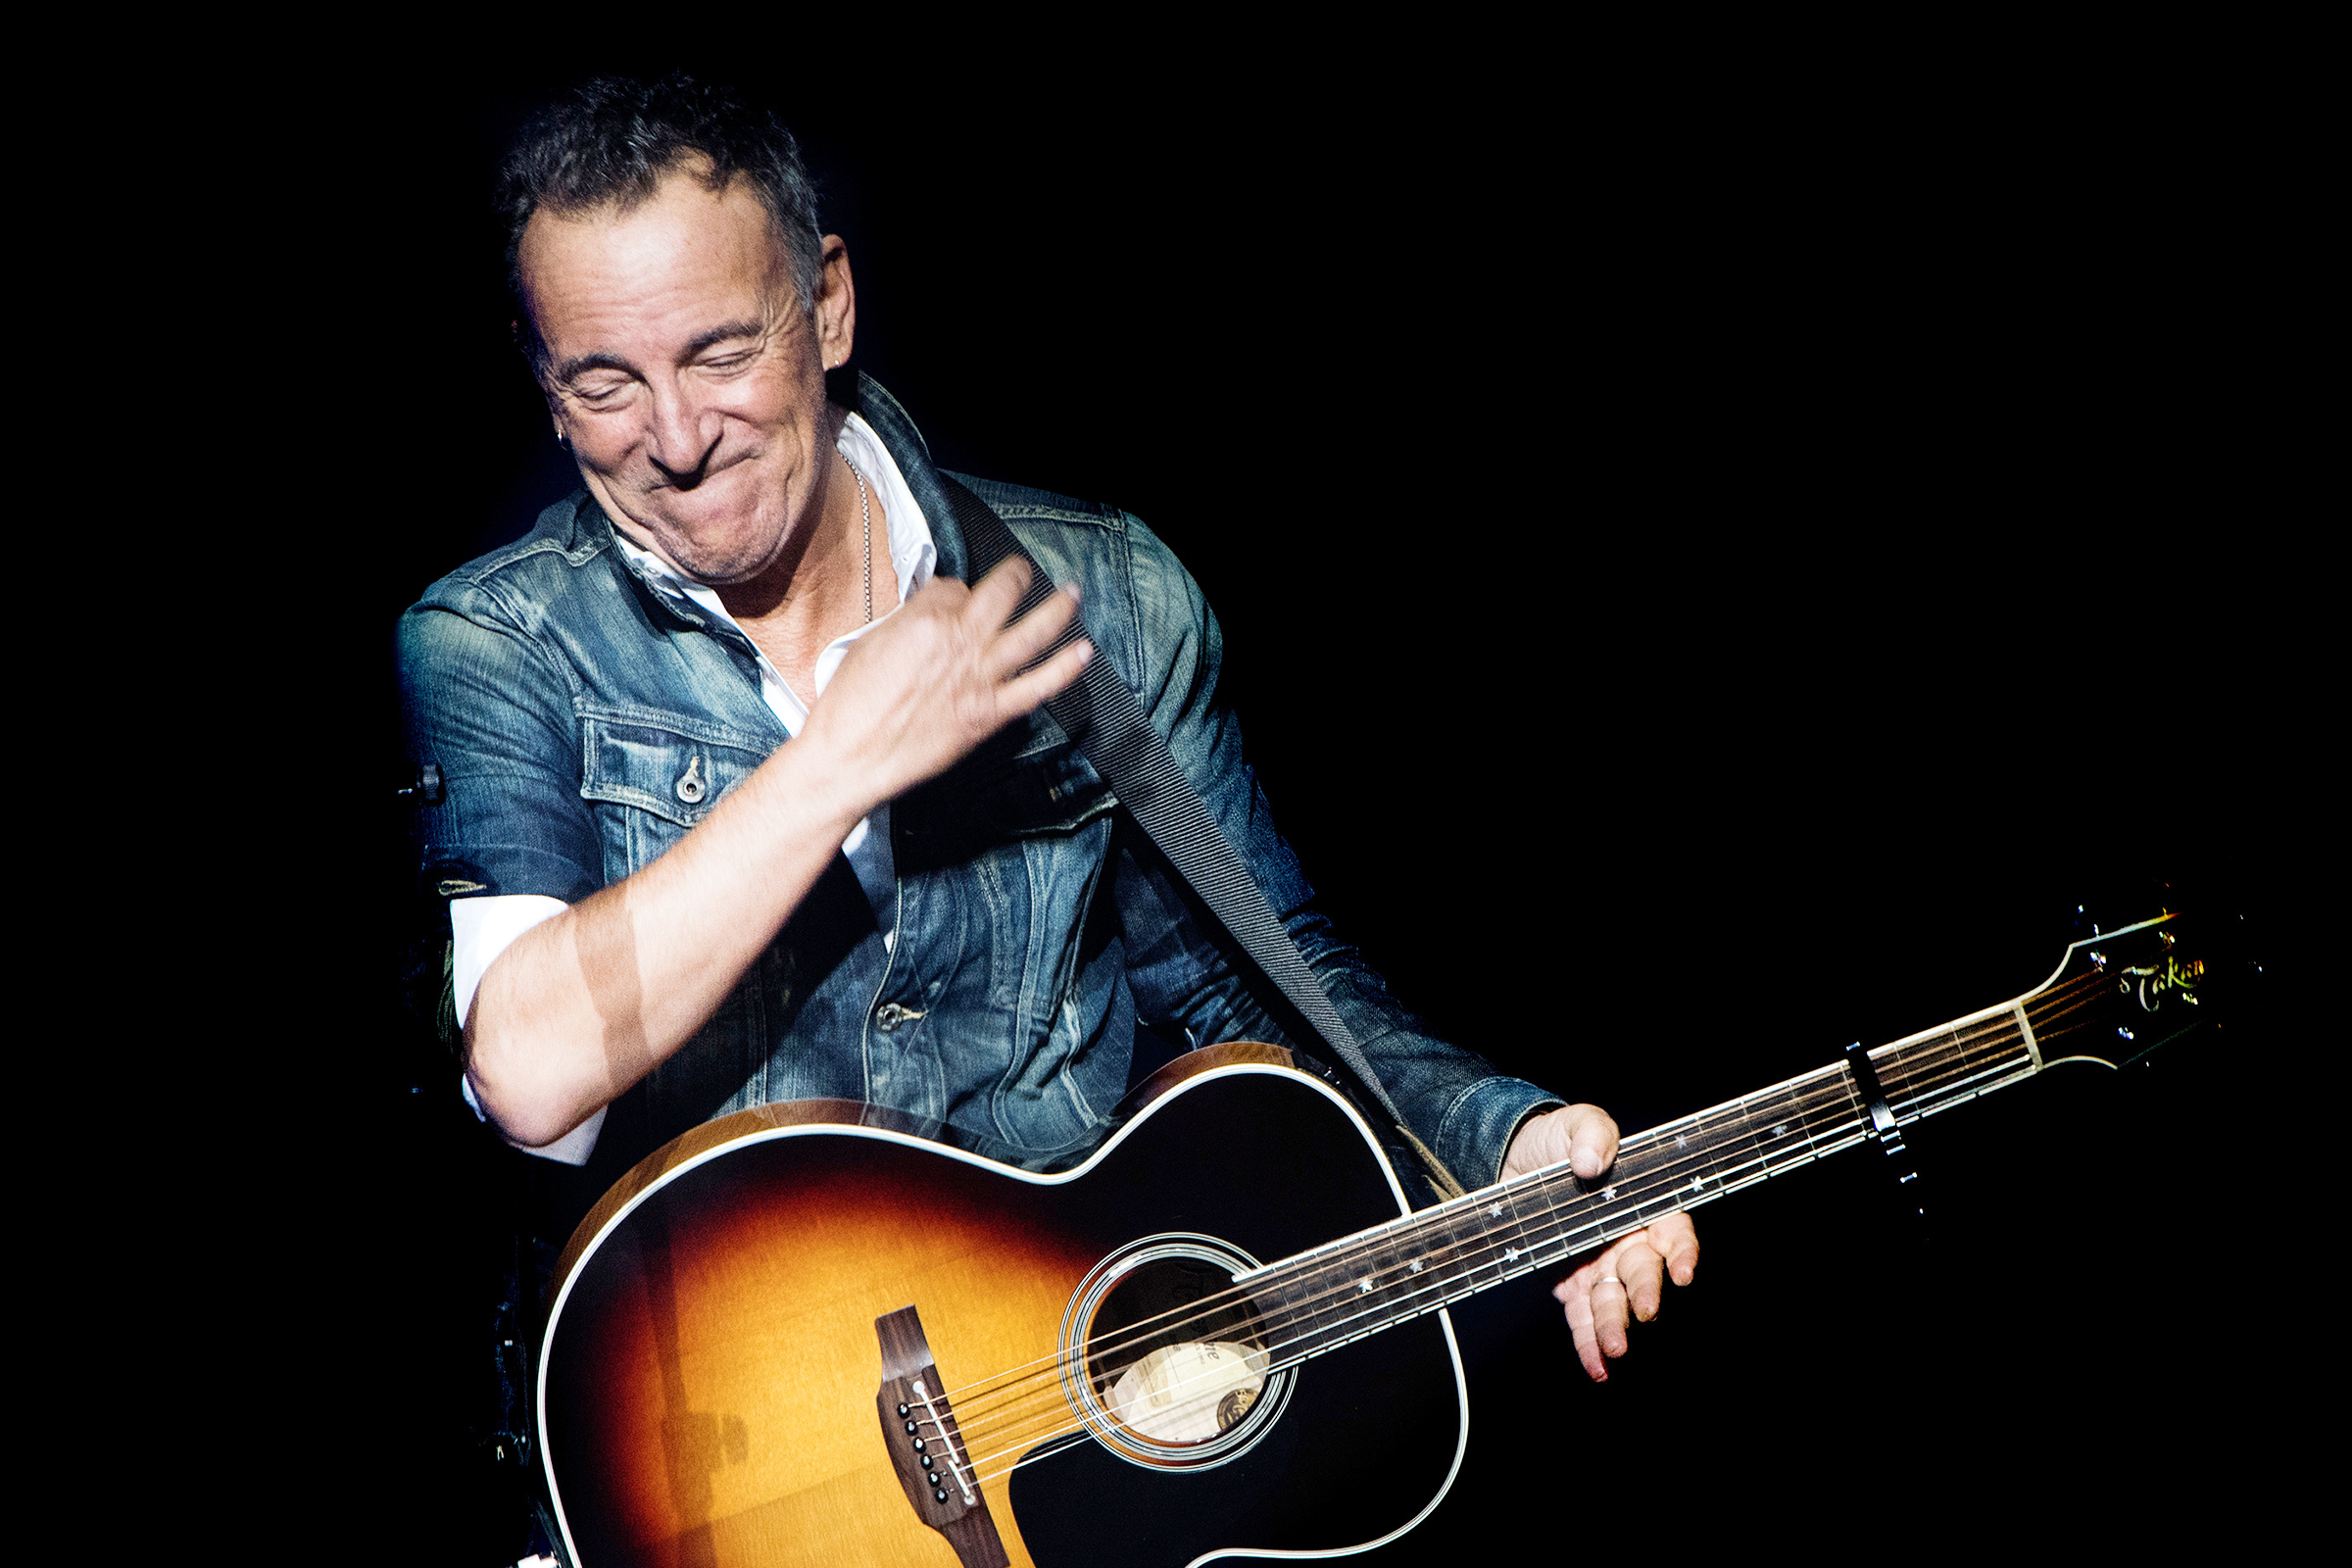 Is Bruce Springsteen Dropping Hints About a New Album?